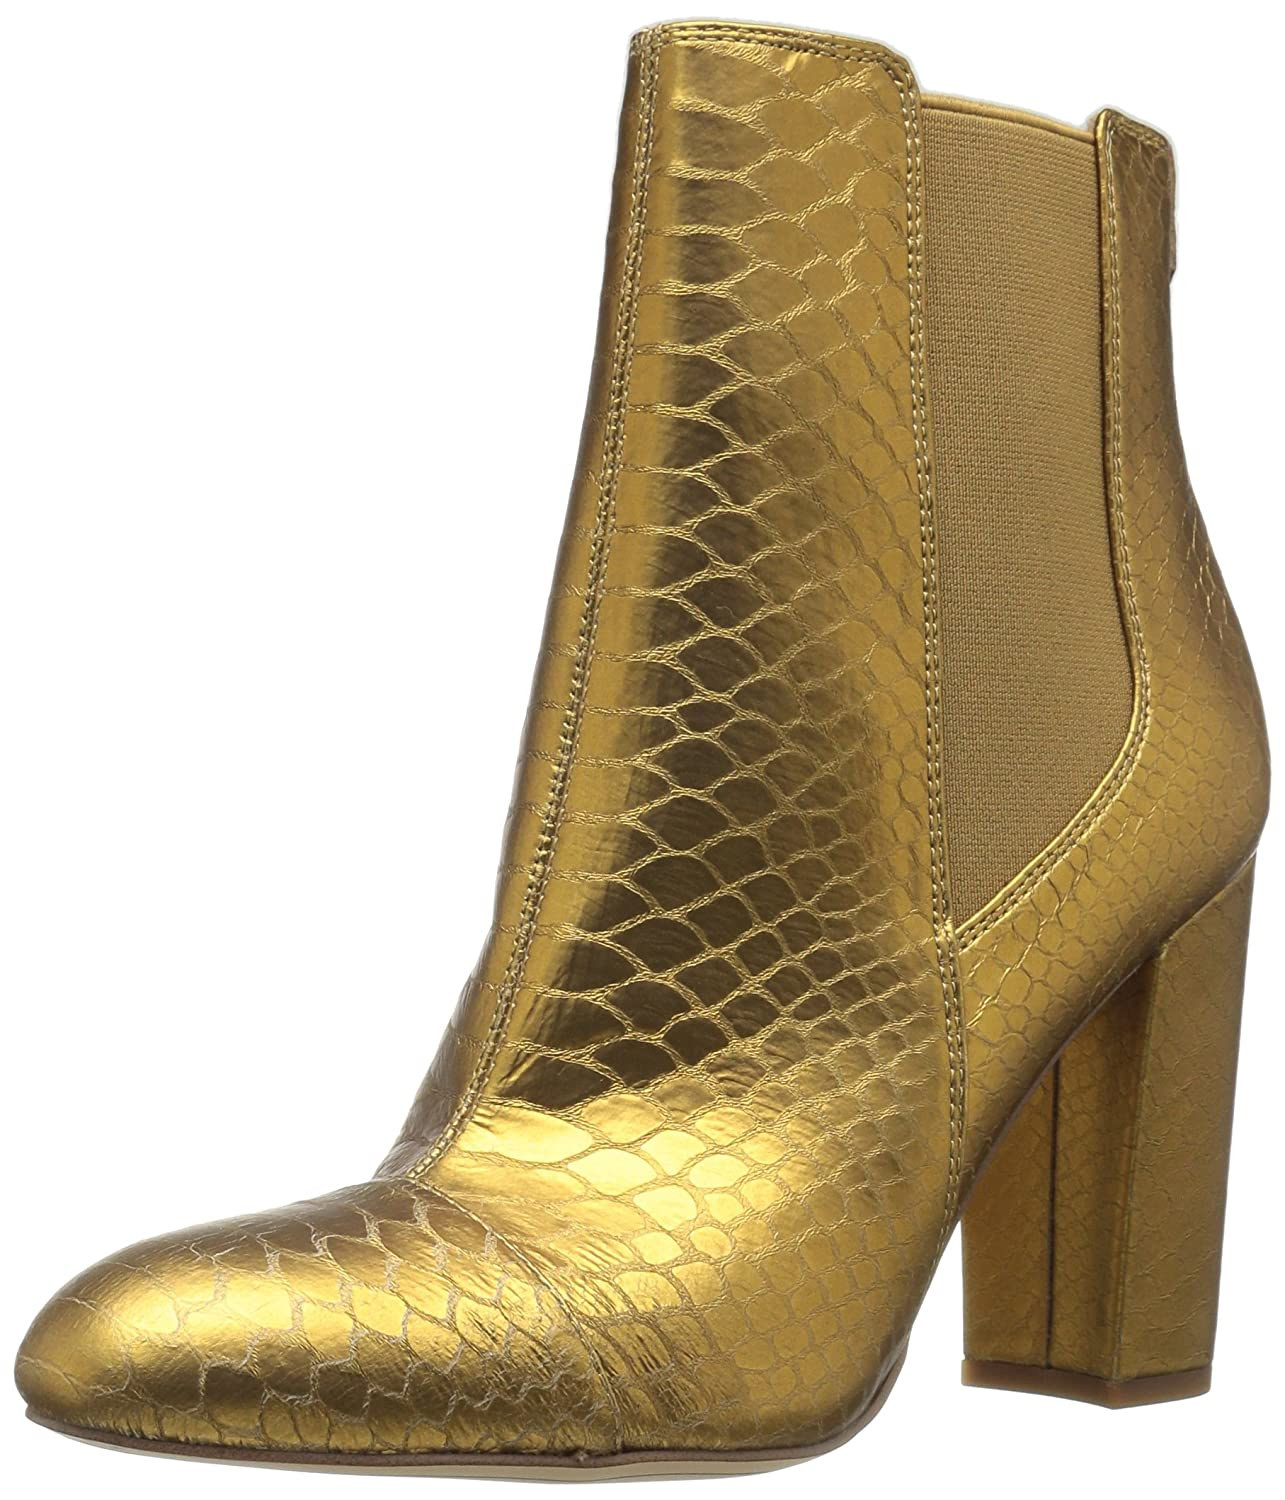 Sam Edelman Women's Case Chelsea Boot B06XBZY4FW 9.5 B(M) US|Gold Snake Print Leather